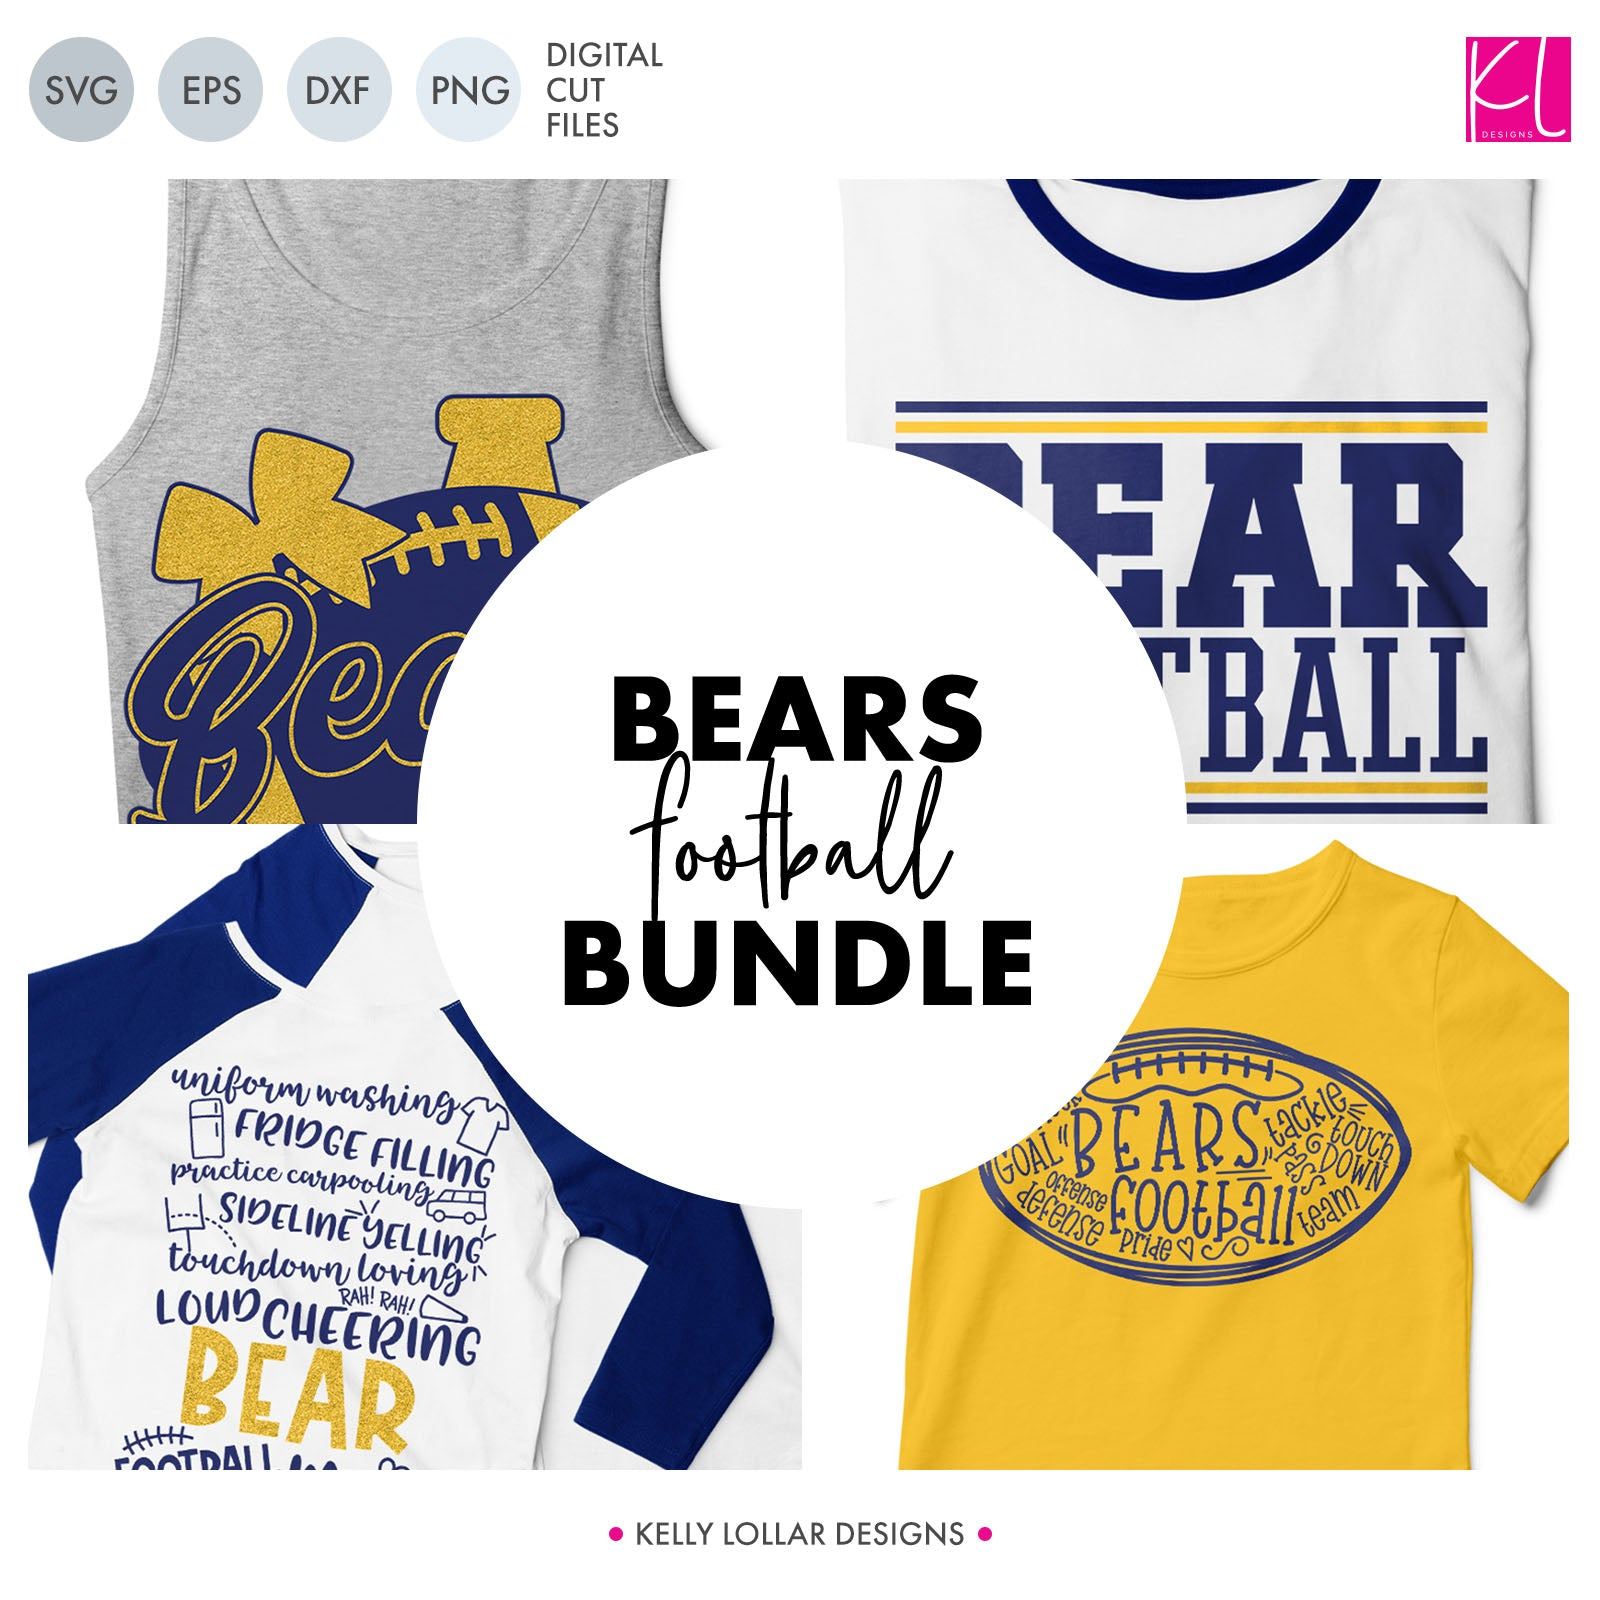 Bears Football Bundle | SVG DXF EPS PNG Cut Files